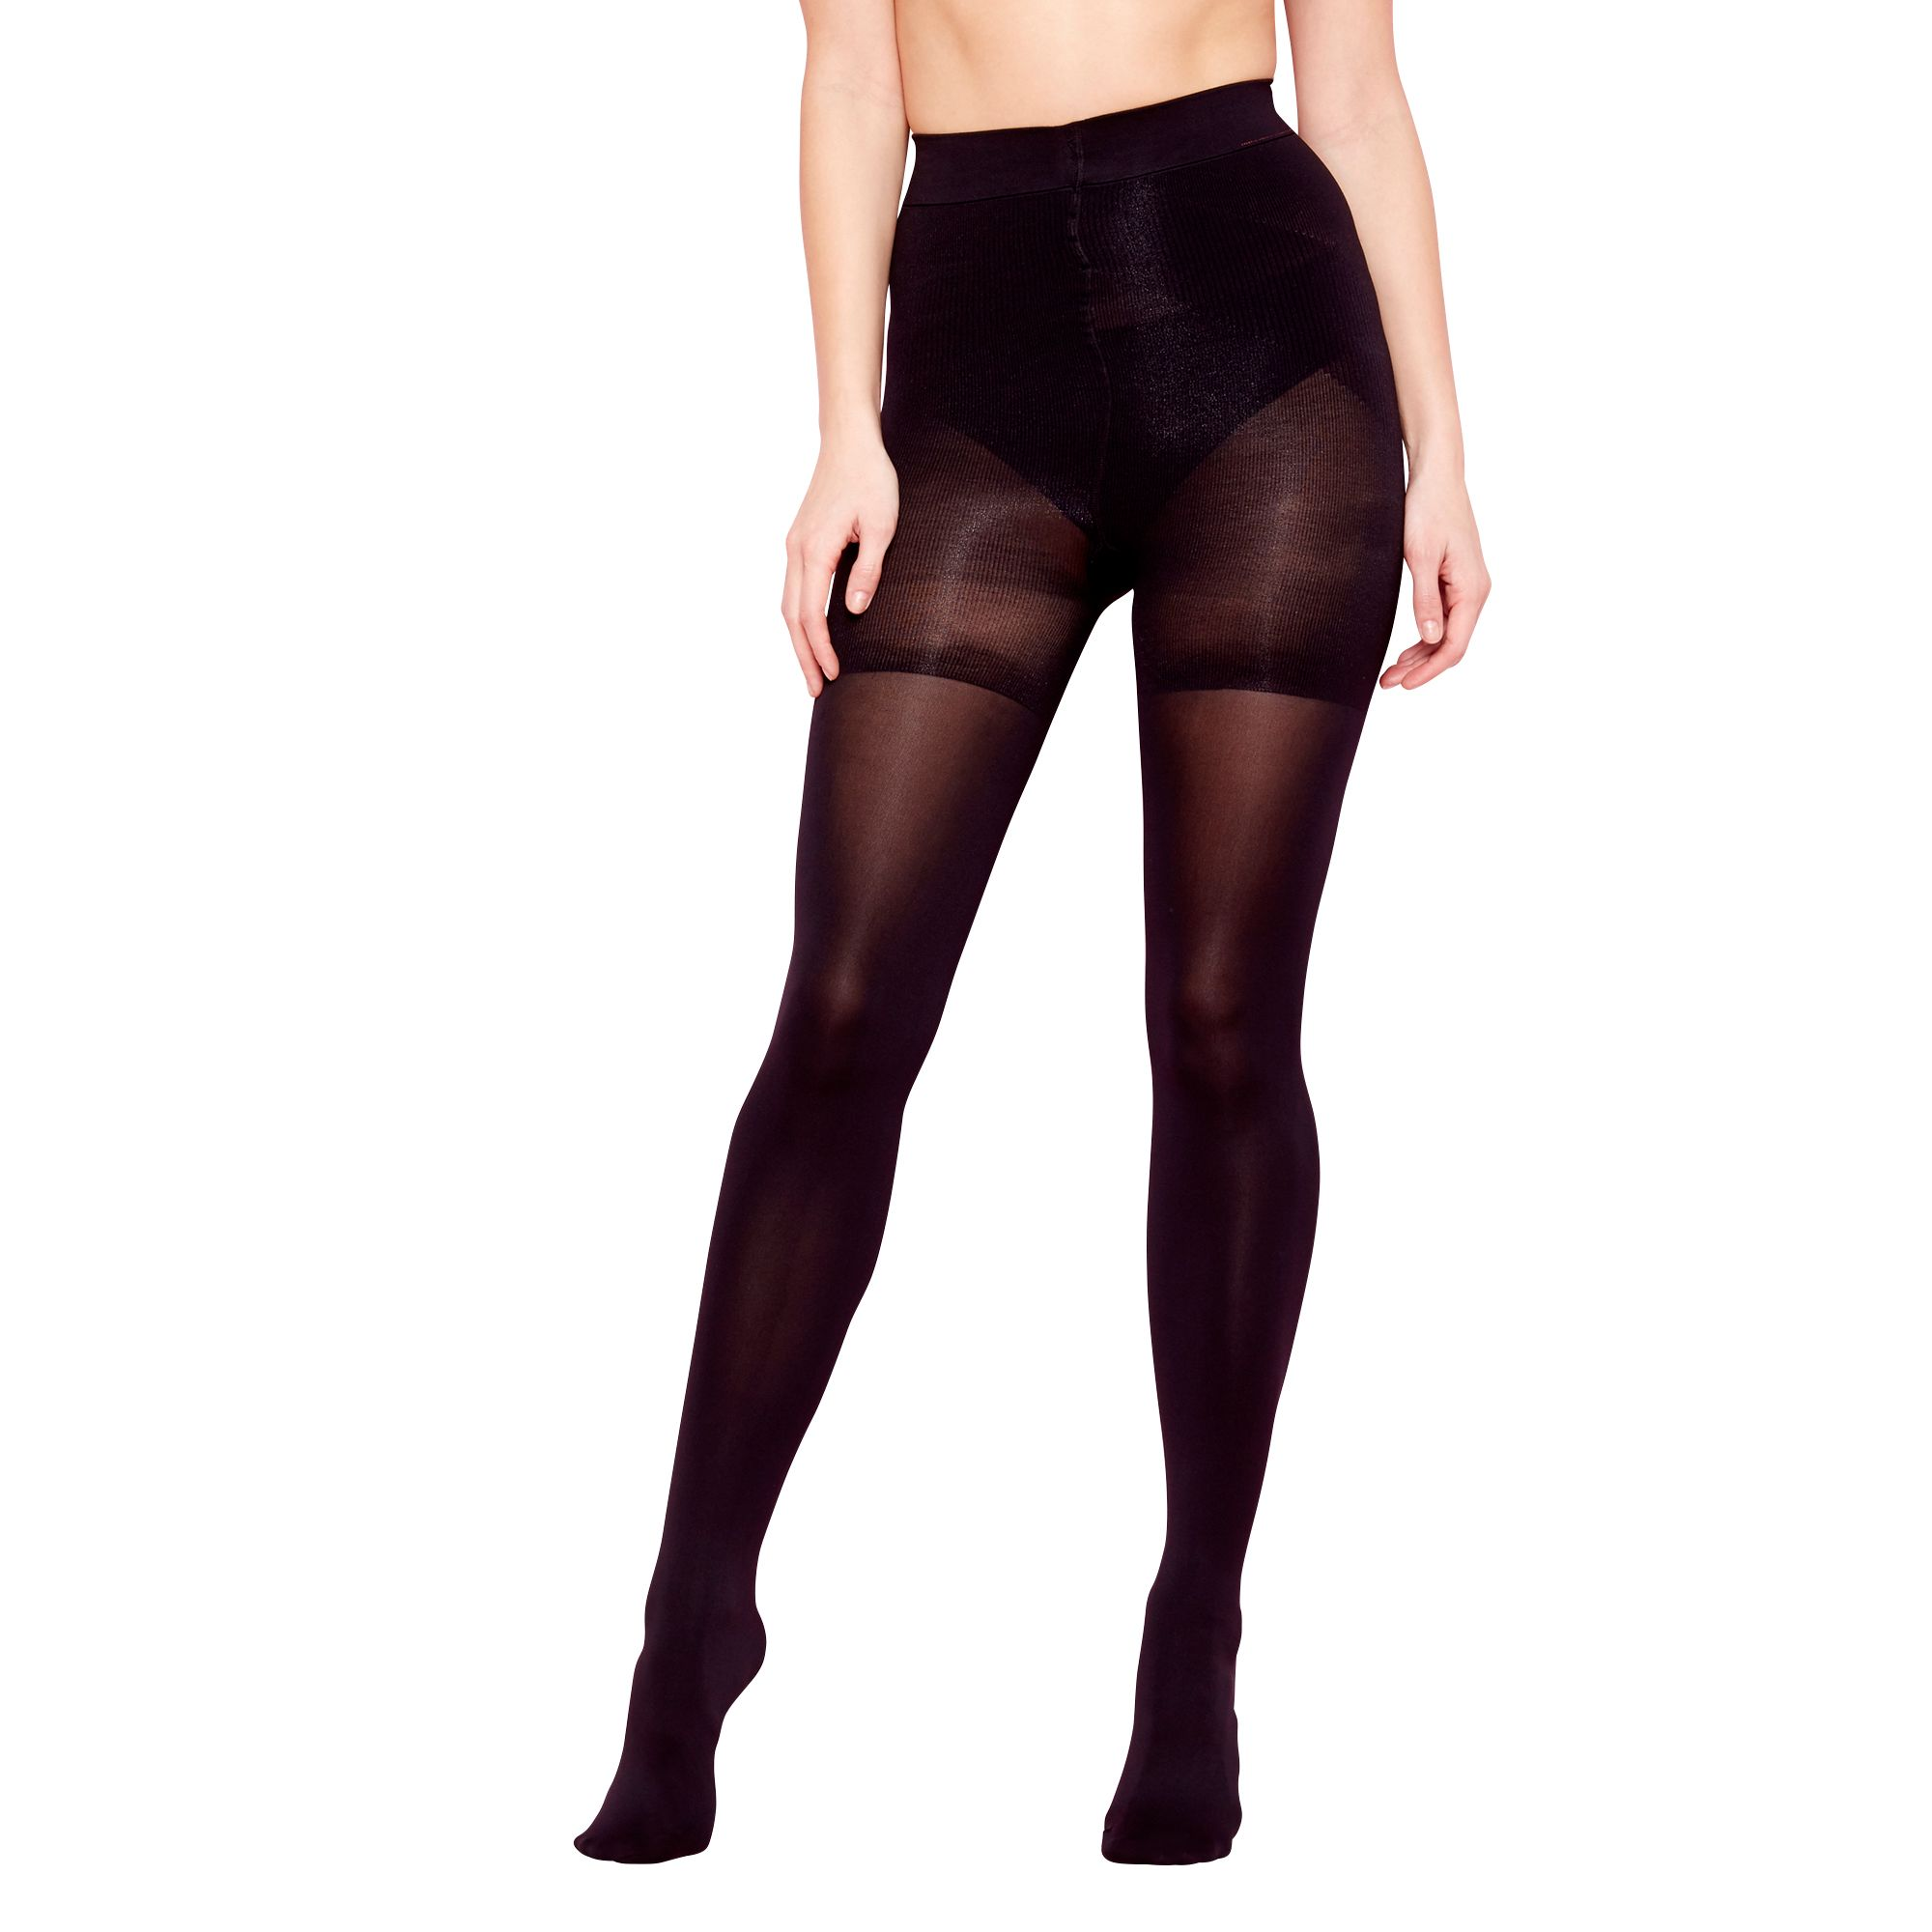 Free shipping and returns on Women's Tights Socks & Hosiery at makeshop-zpnxx1b0.cf